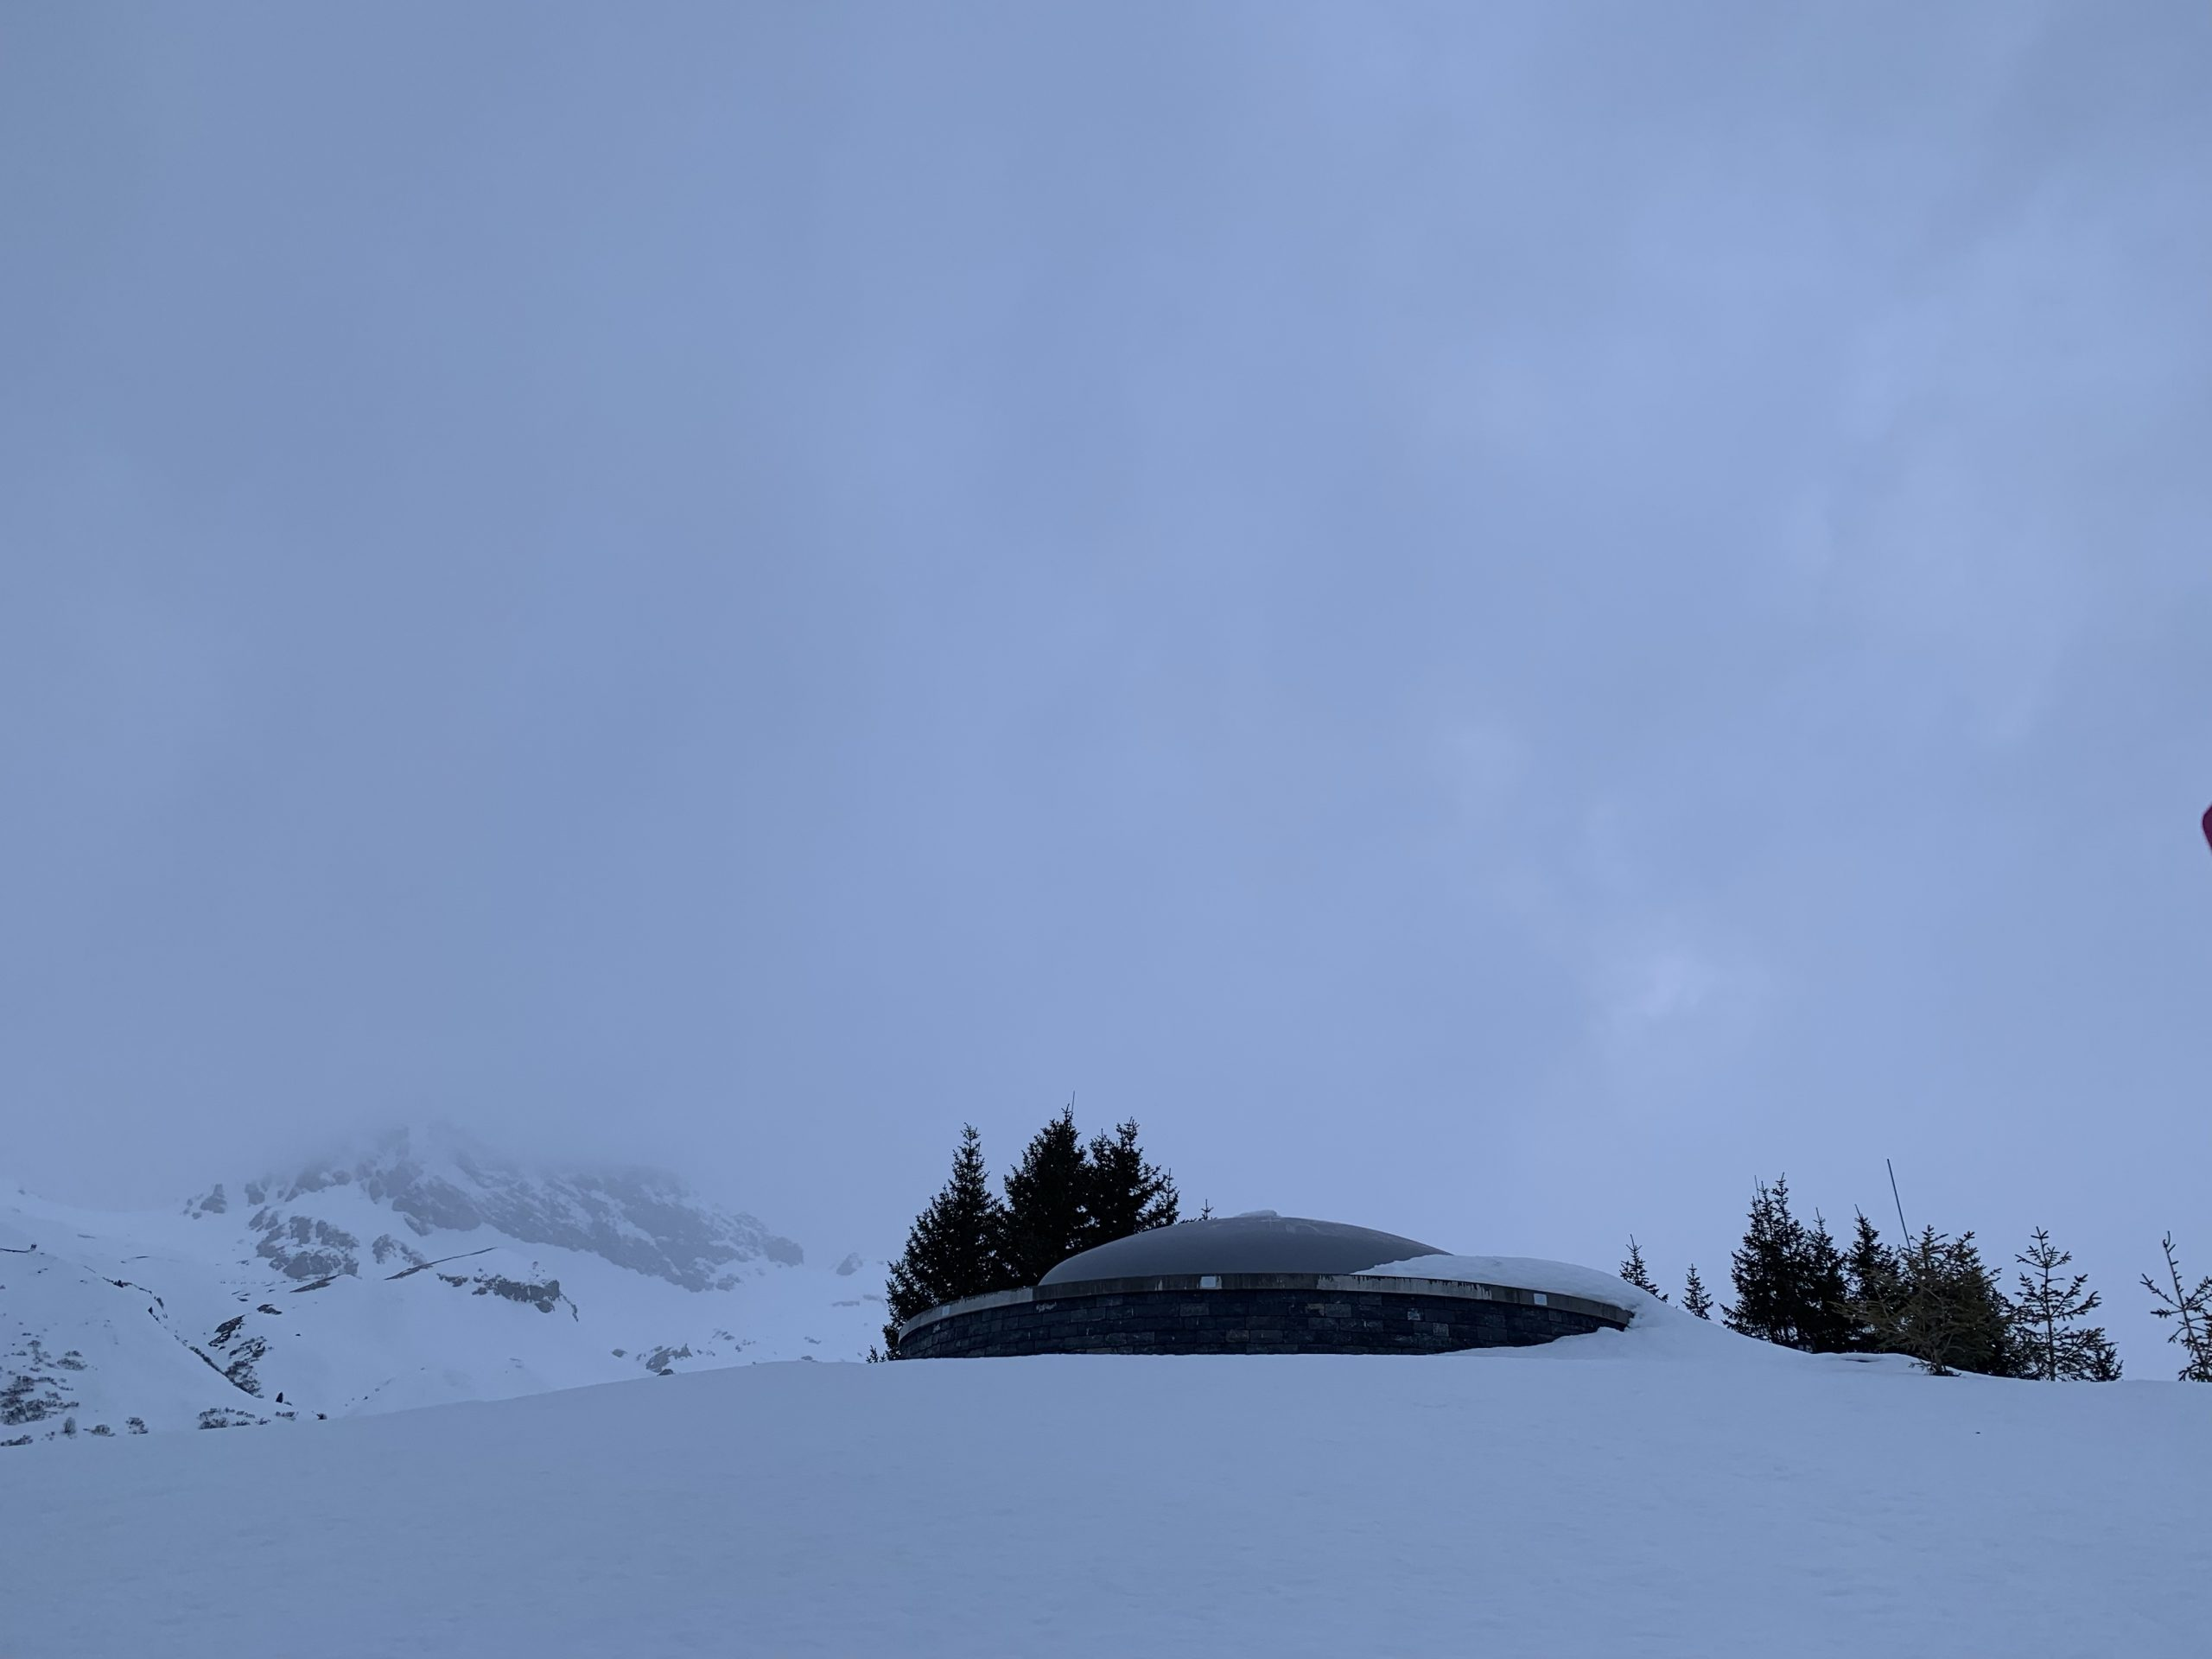 The Skyspace Lech - a walk-in art installation by James Turrell